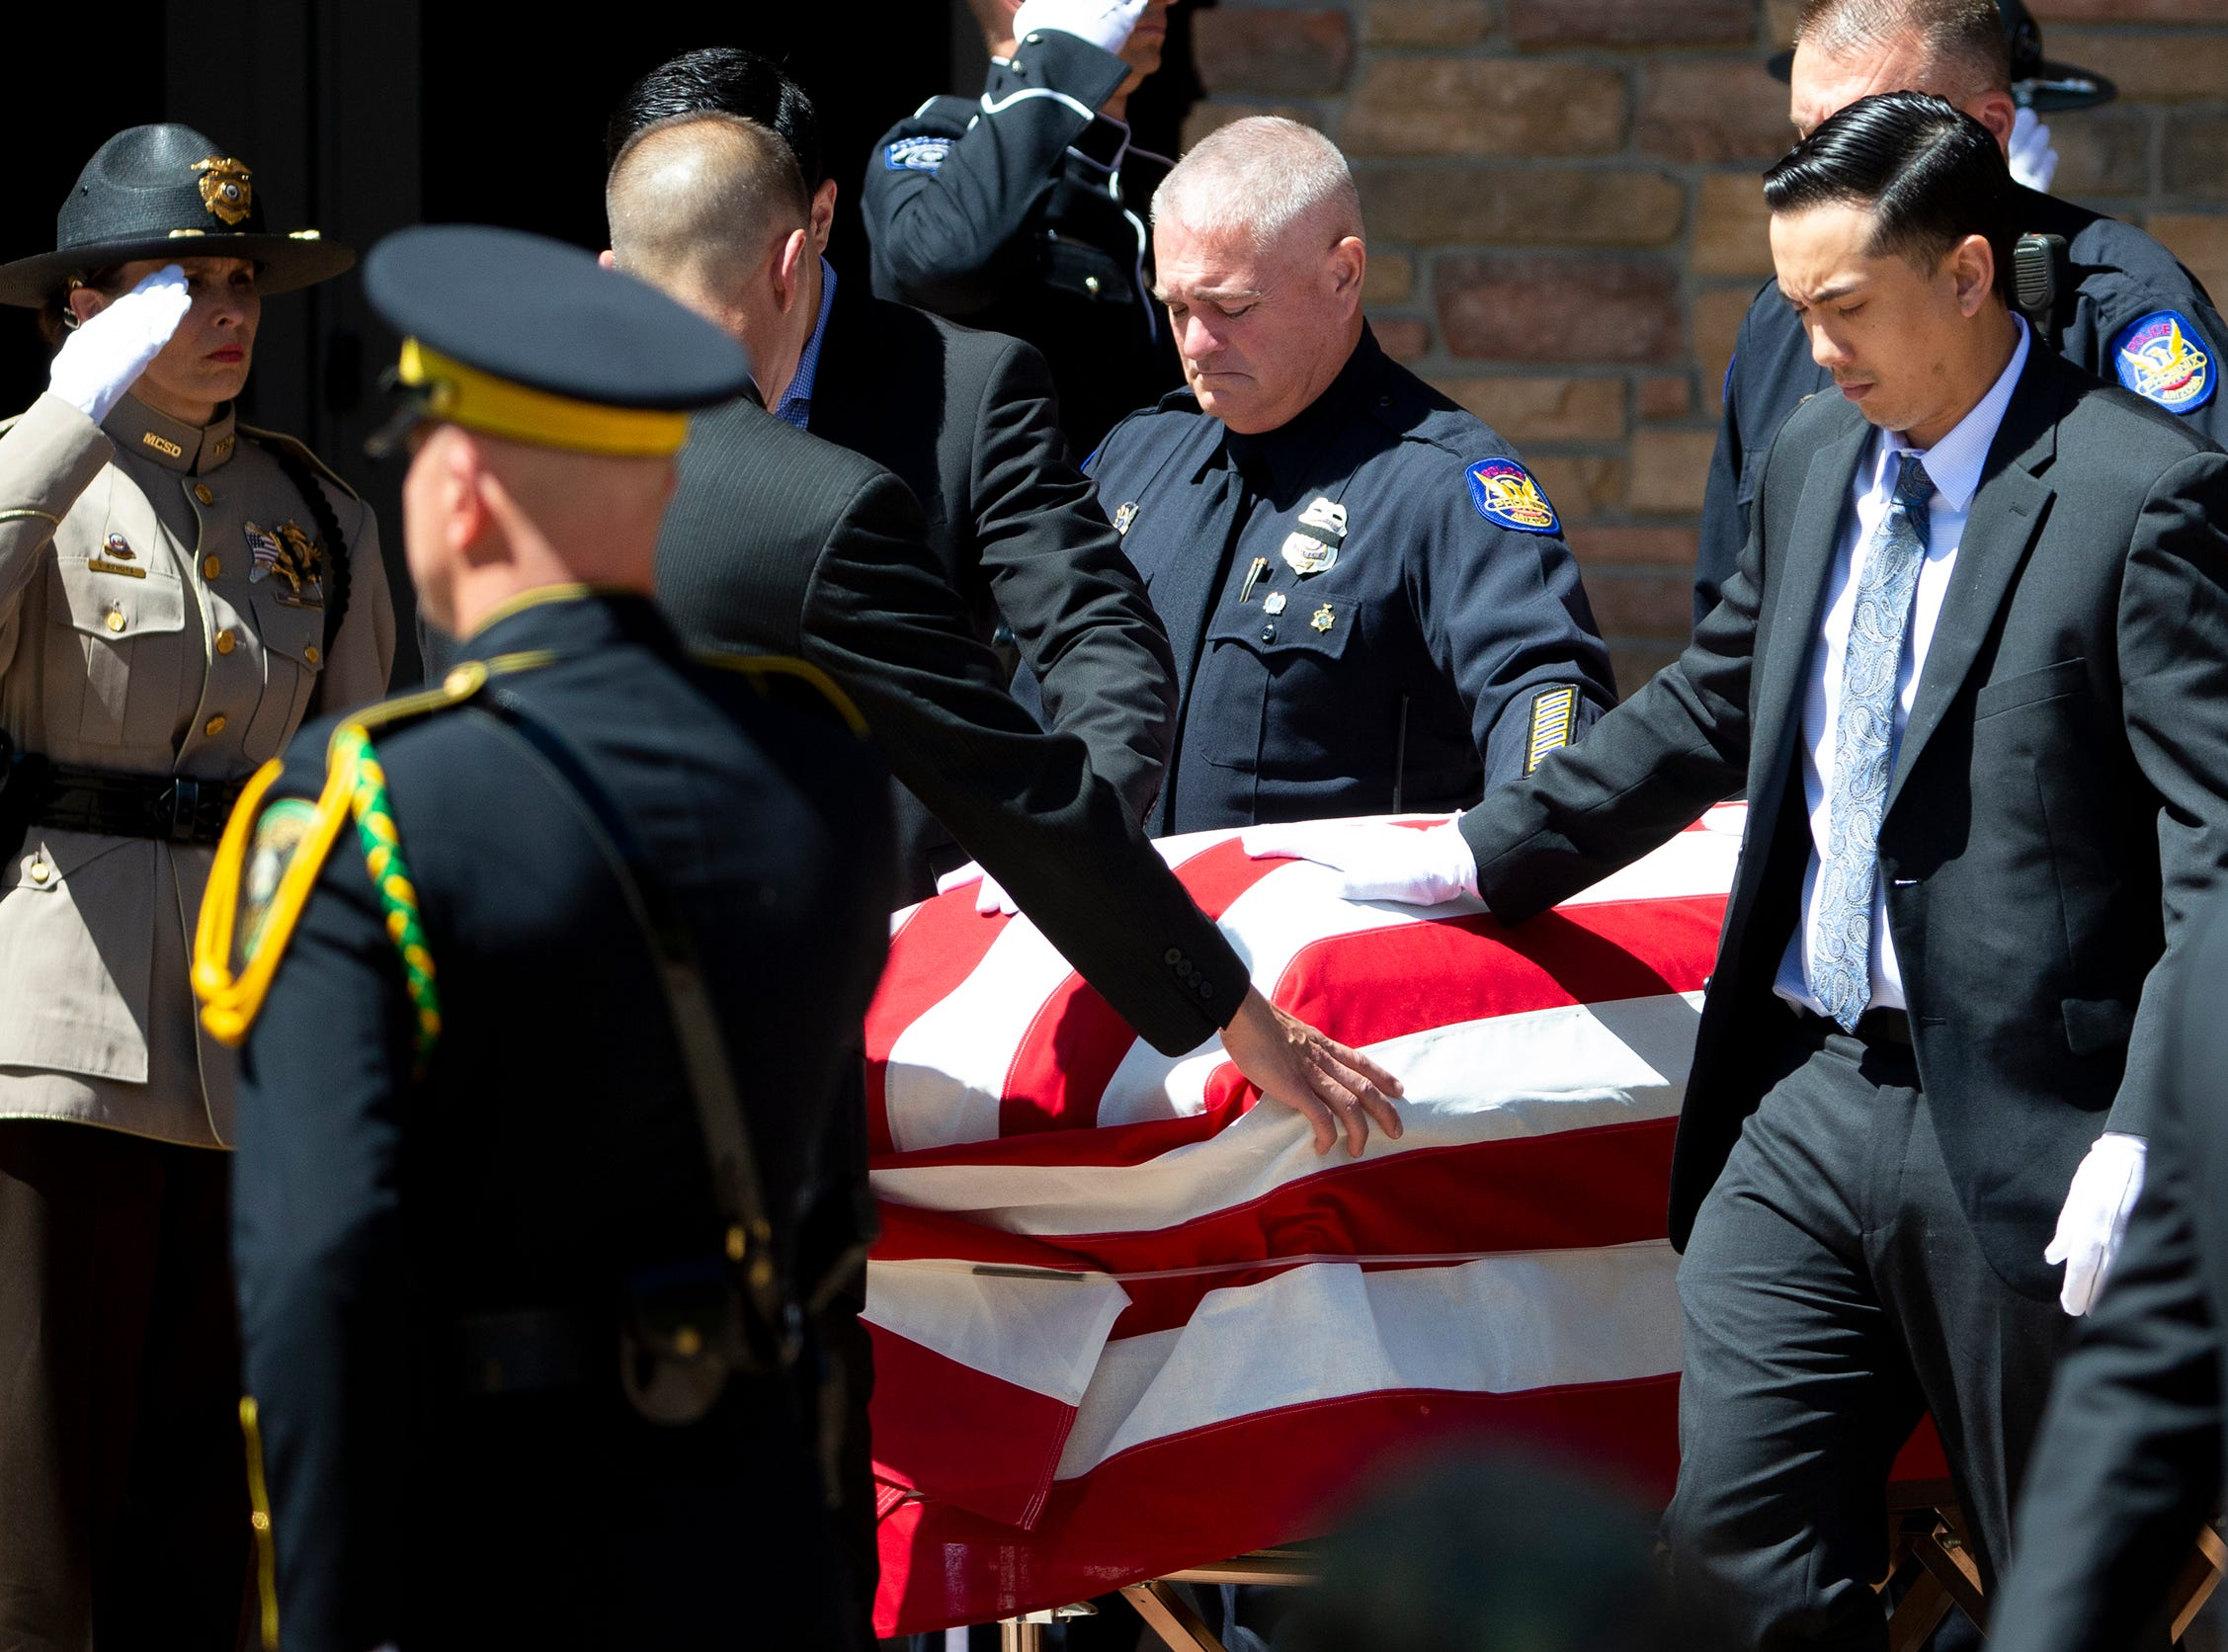 Pallbearers escort the casket of Phoenix Police Officer Paul Rutherford after funeral services at Christ's Church of the Valley in Peoria on March 28, 2019. Rutherford was killed in a crash March 21.